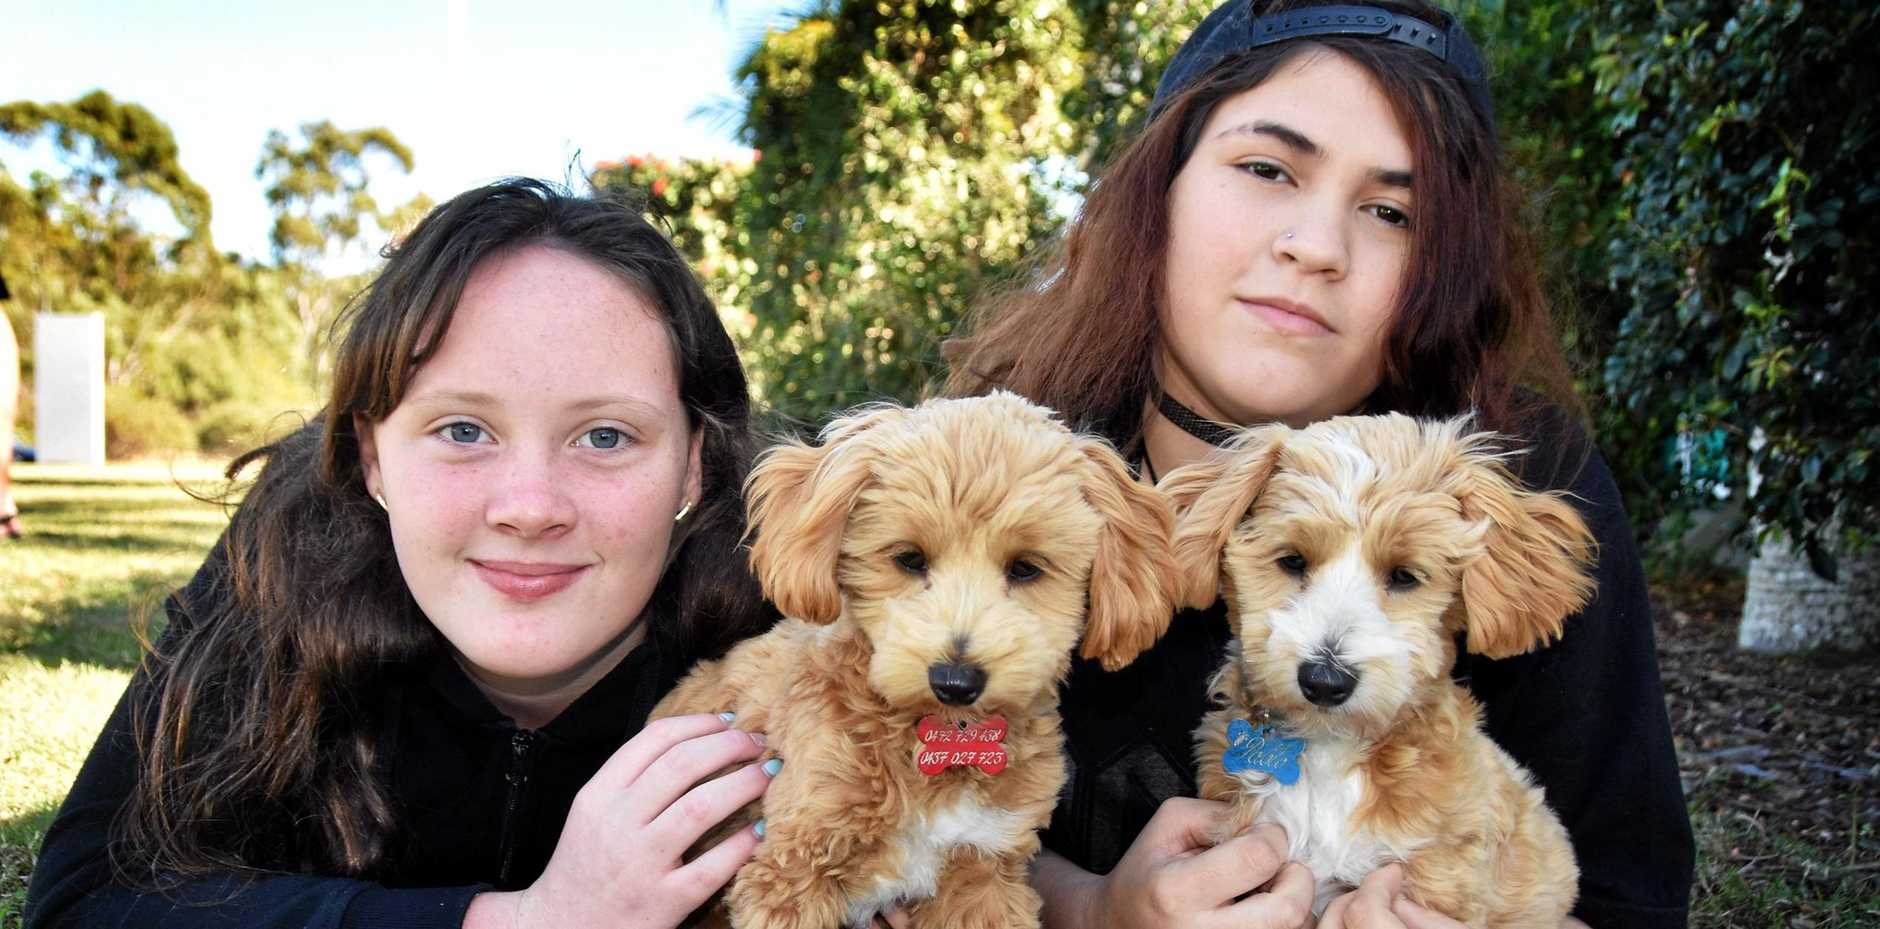 CUTE AND CUDDLY: Ashtyn and Kalia with therapy dogs Moana and Pablo.